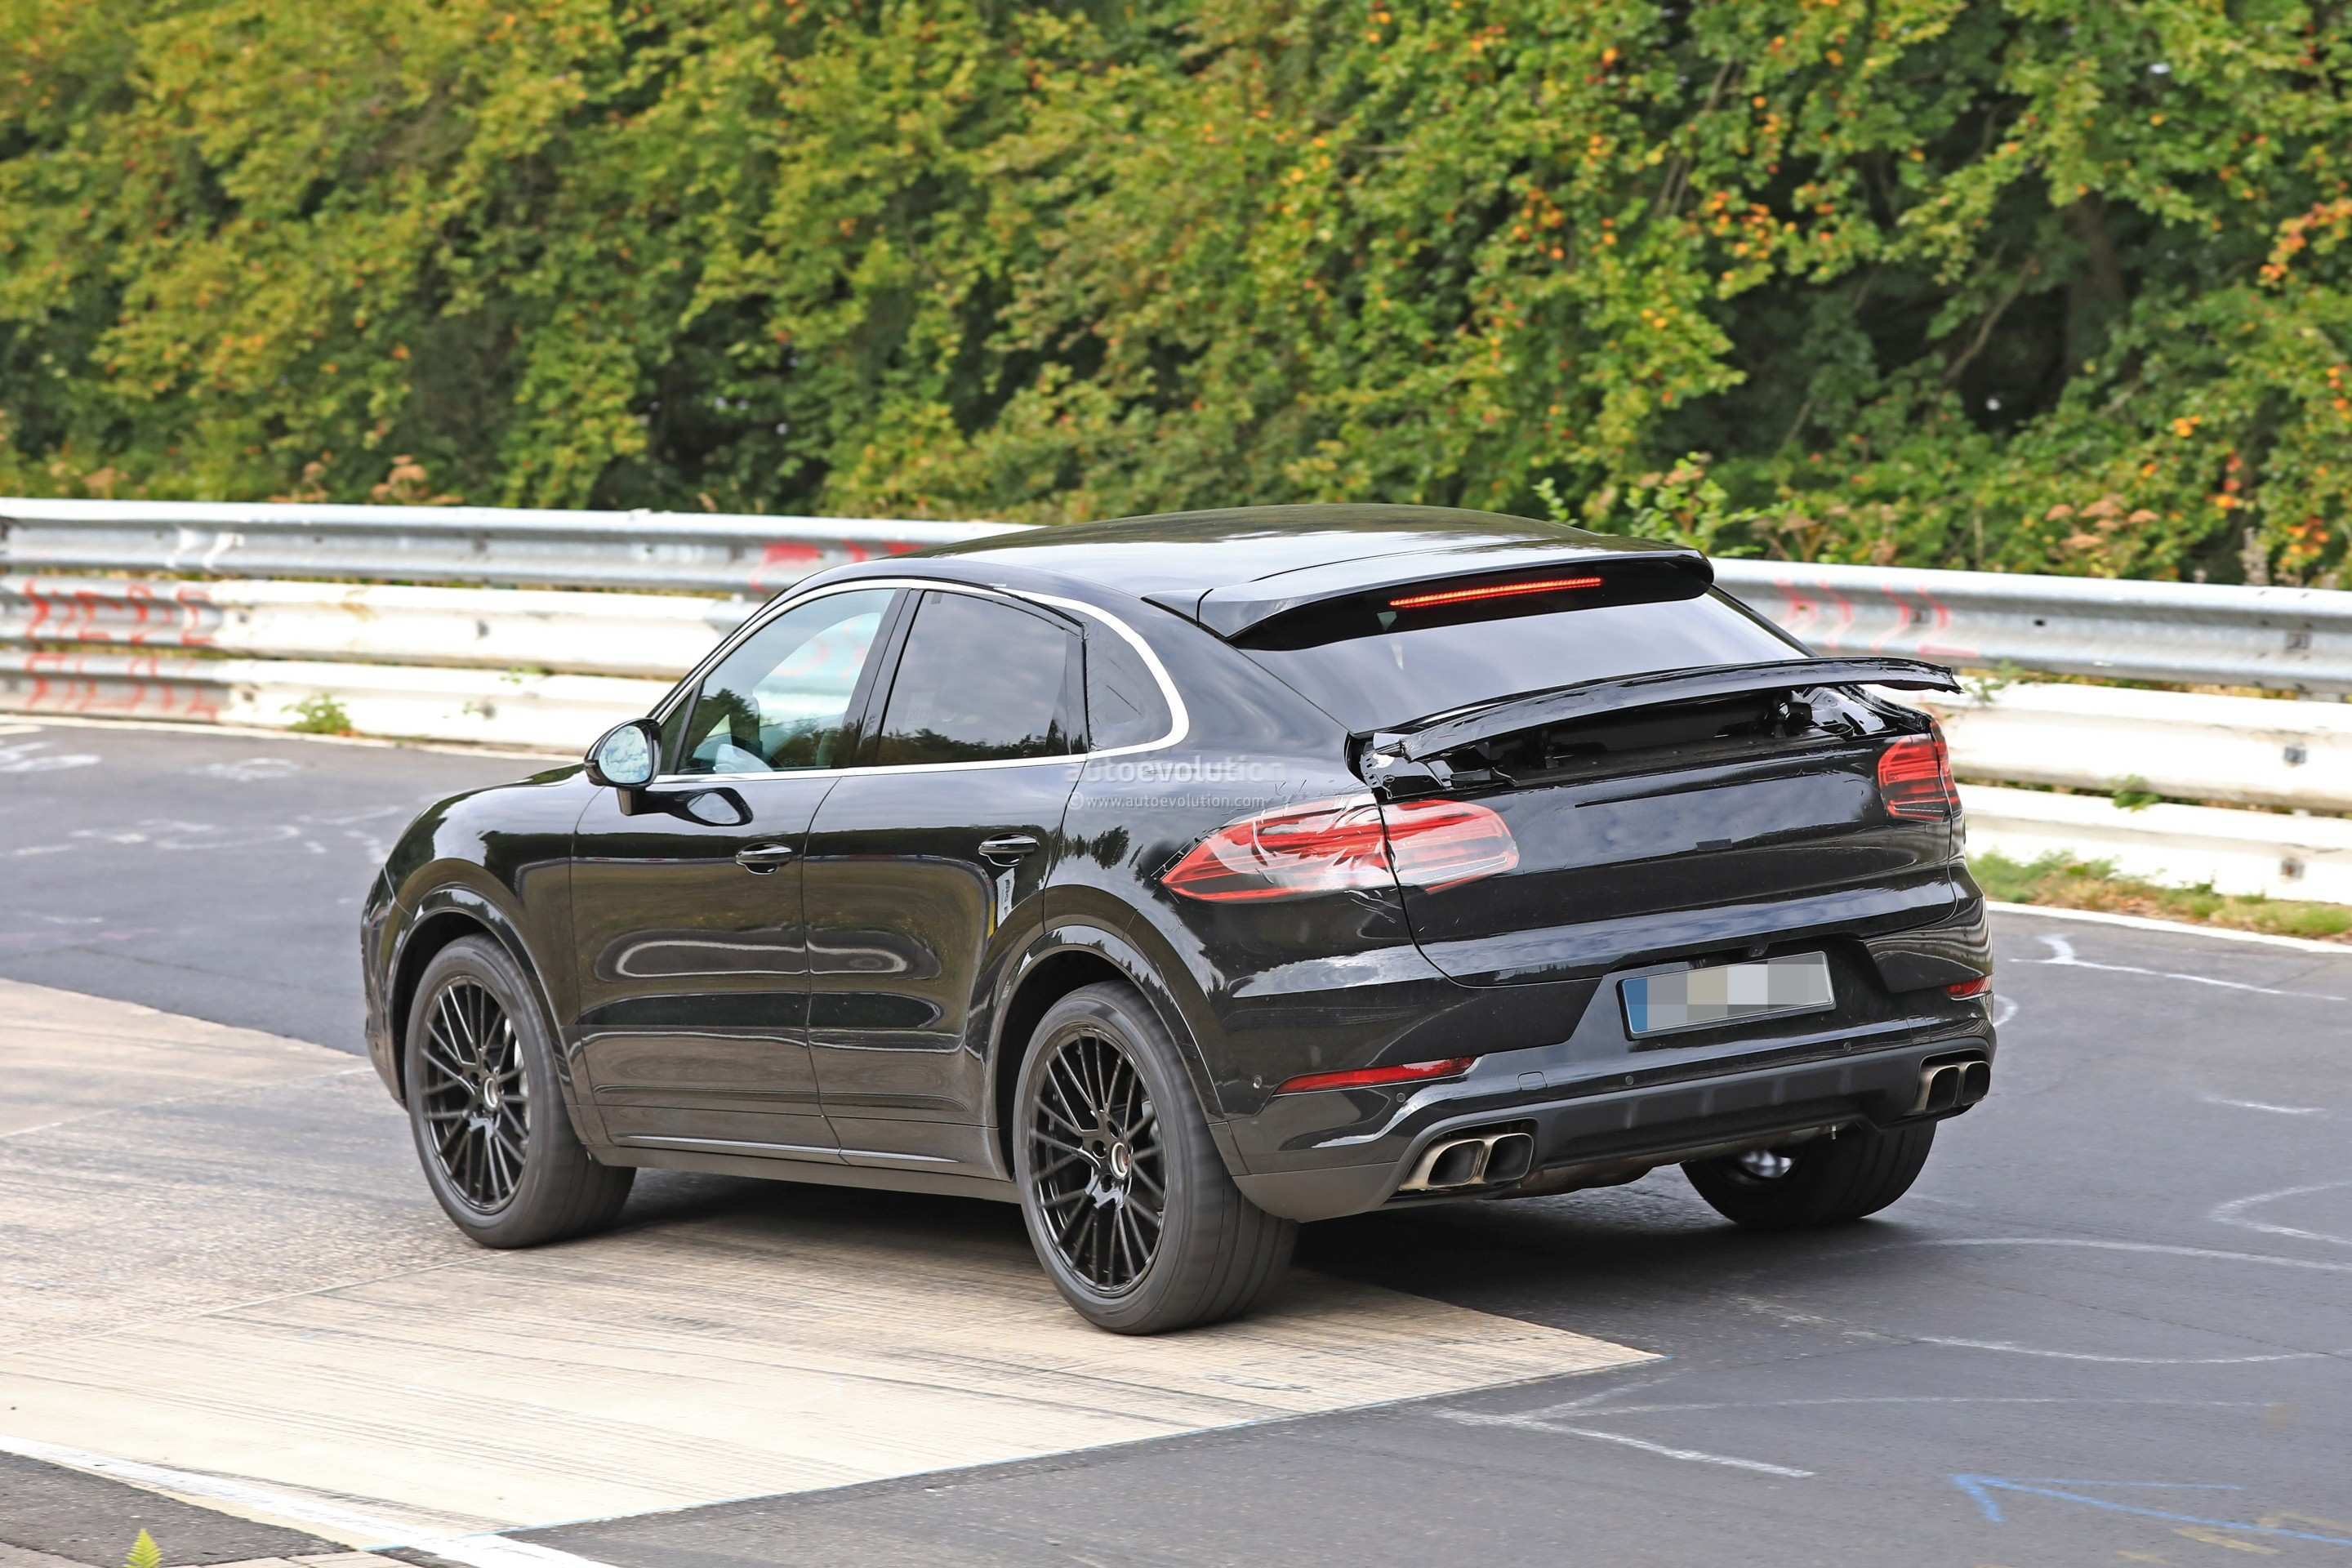 76 All New 2020 Porsche Macan Turbo New Review